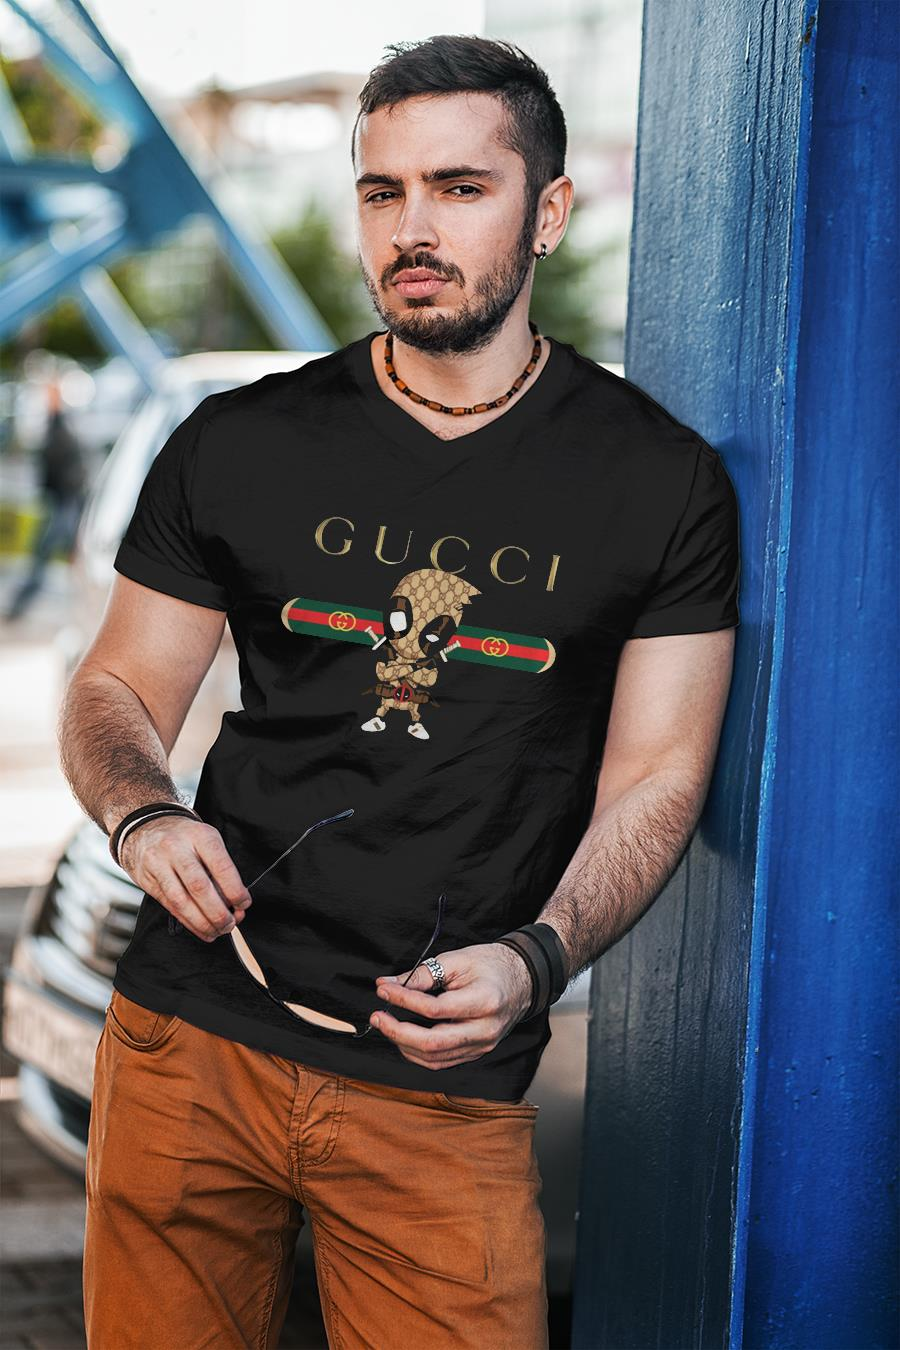 Gucci Deadpool shirt unisex